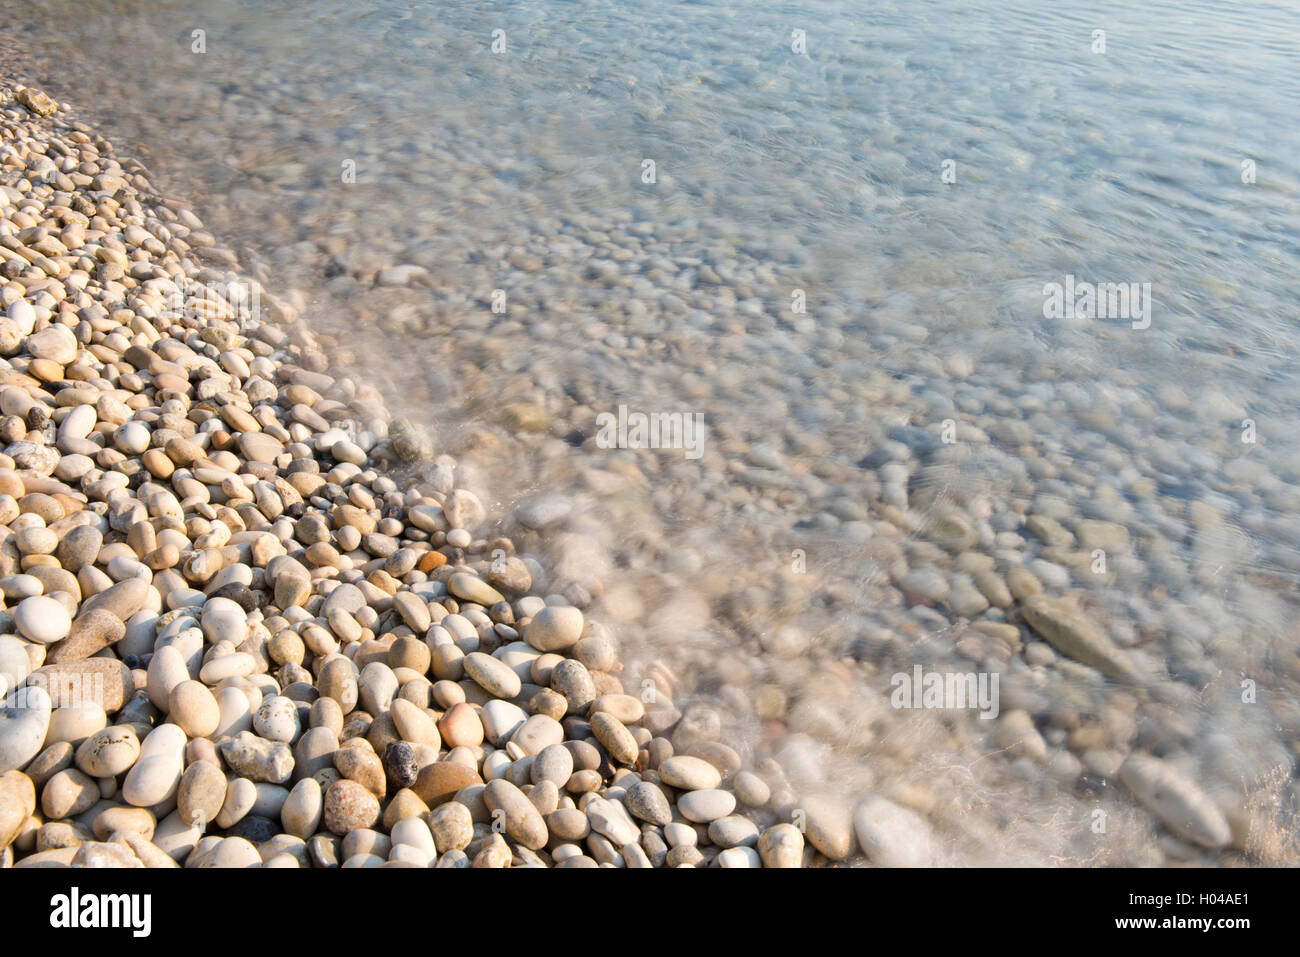 Sea water washing over smoothe rounded stones on Orkos Beach on the island of Paxos, The Ionian Islands, The Greek - Stock Image